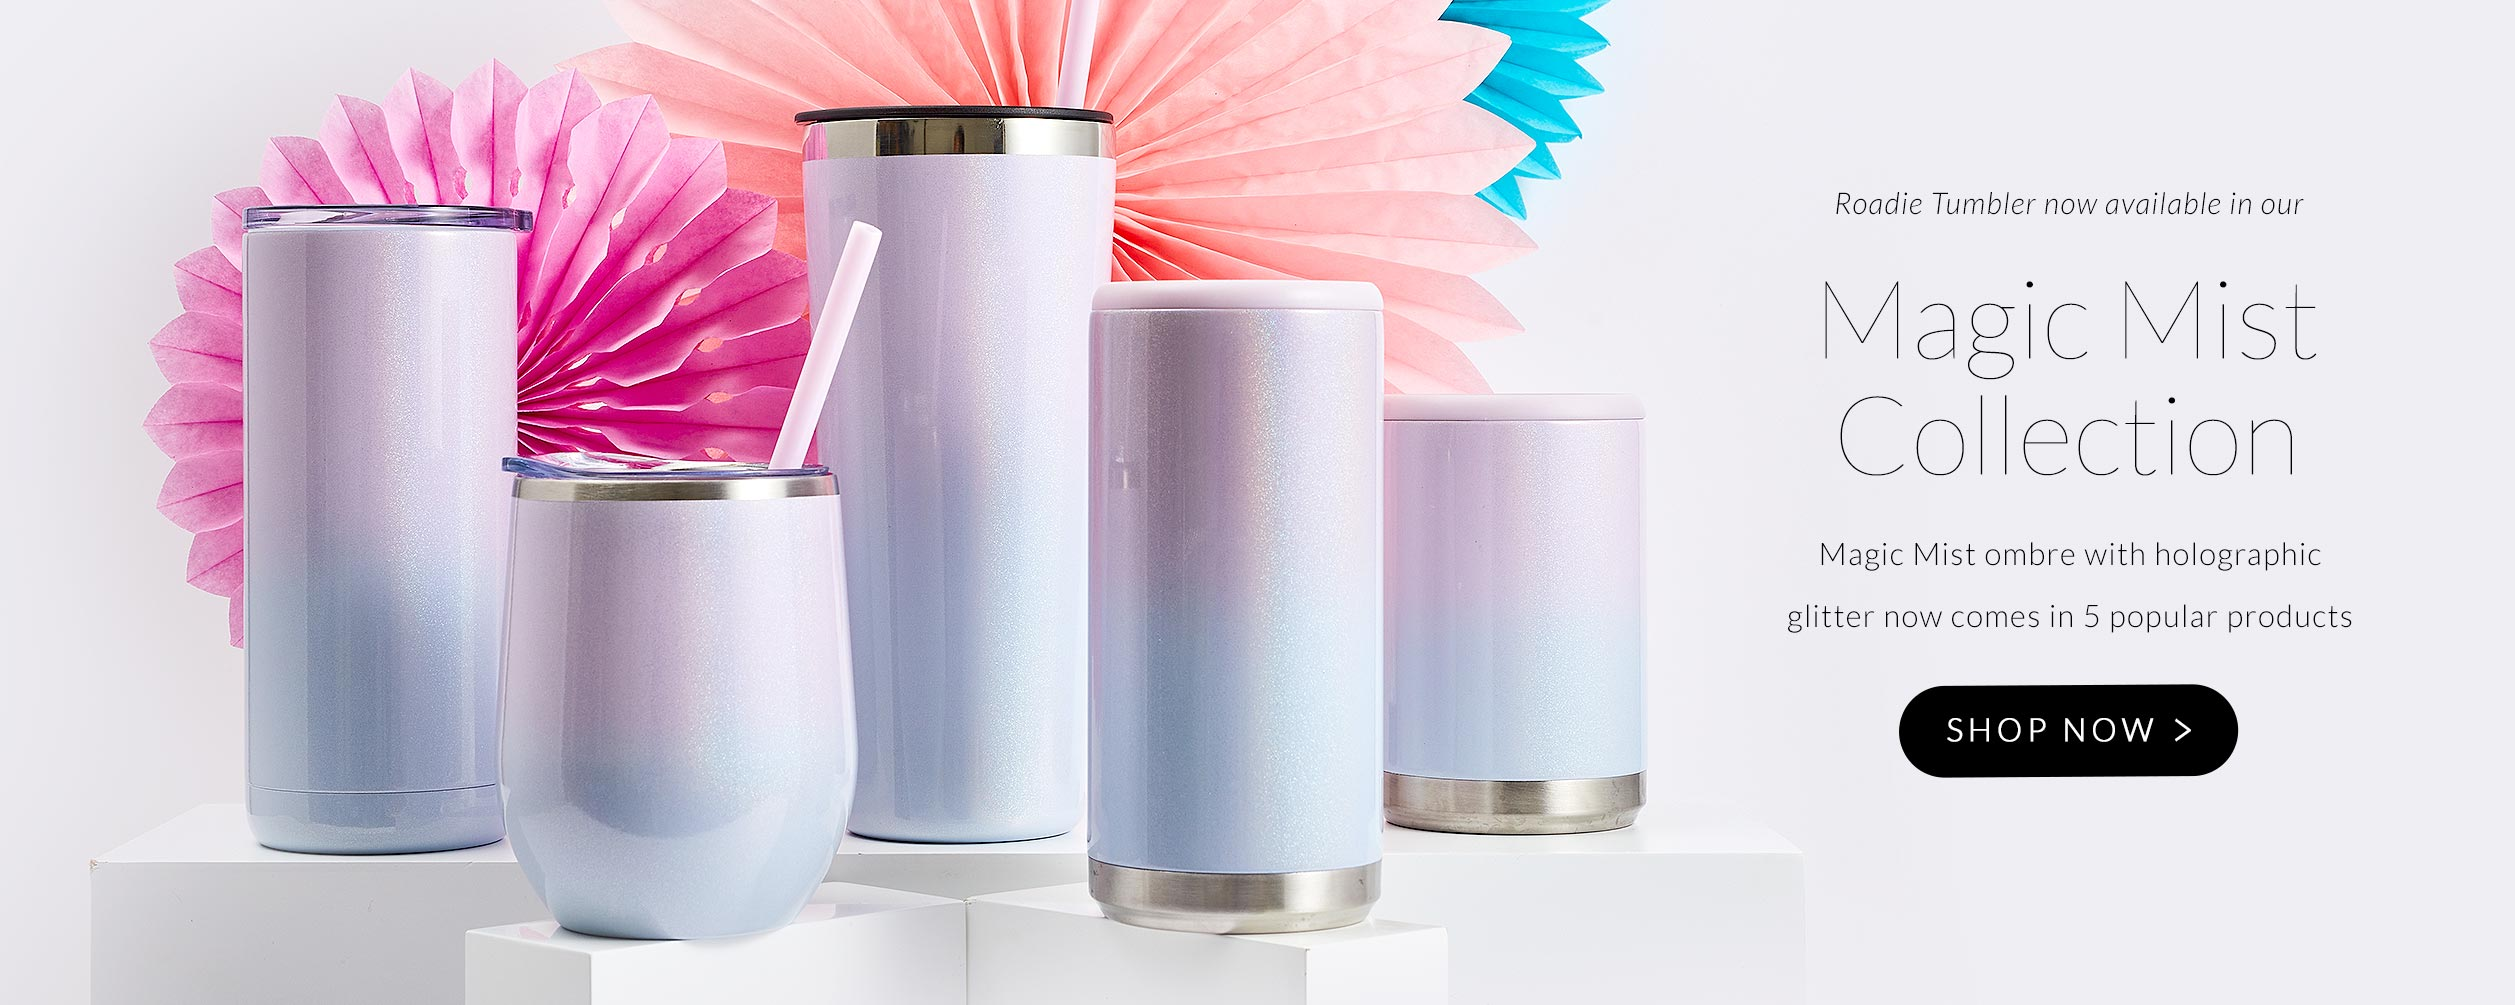 Magic Mist Ombre Collection now includes many of our favorite styles including: Maker Kids, Maker 16oz, Bev Steel, Roadie, Jewel Flask, Skinny Can Cooler and Standard Can Cooler. Start Shopping.